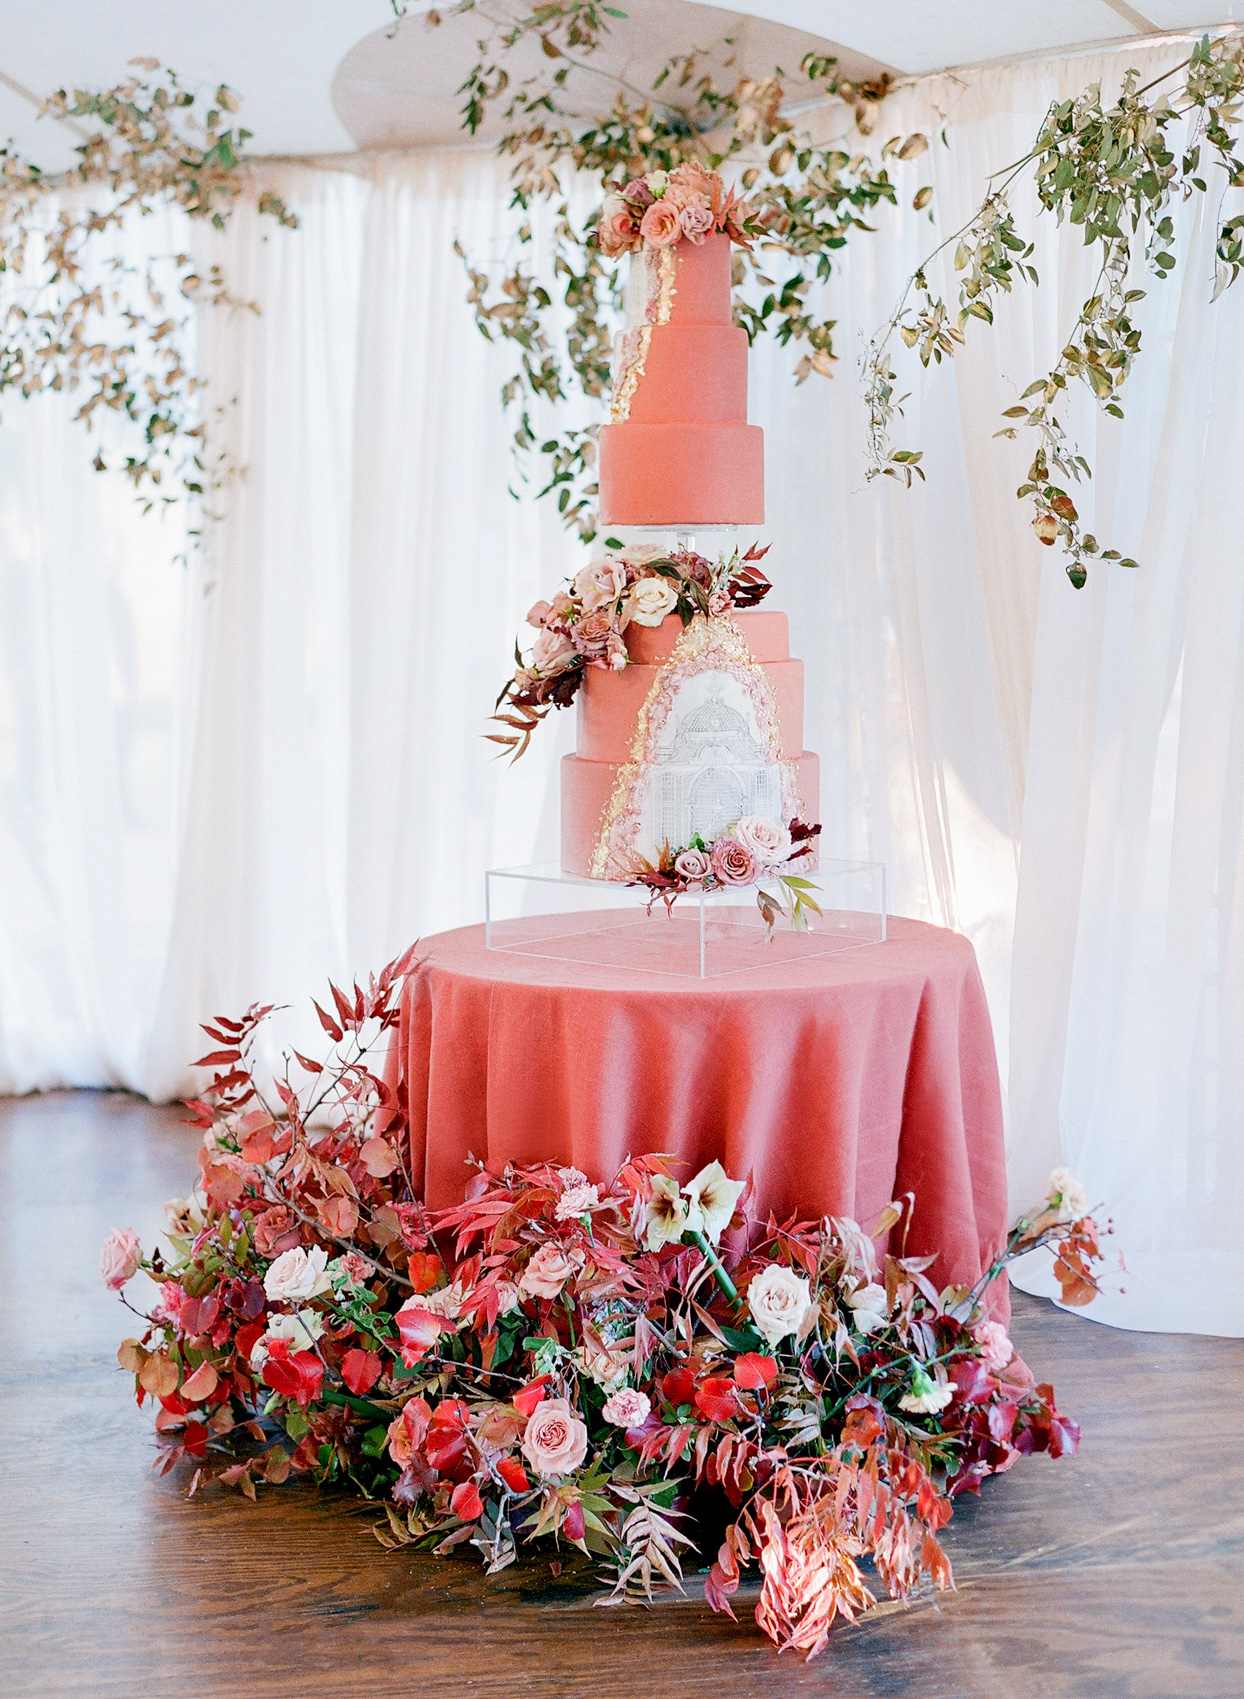 fancy coral wedding cake with architecture design and flowers